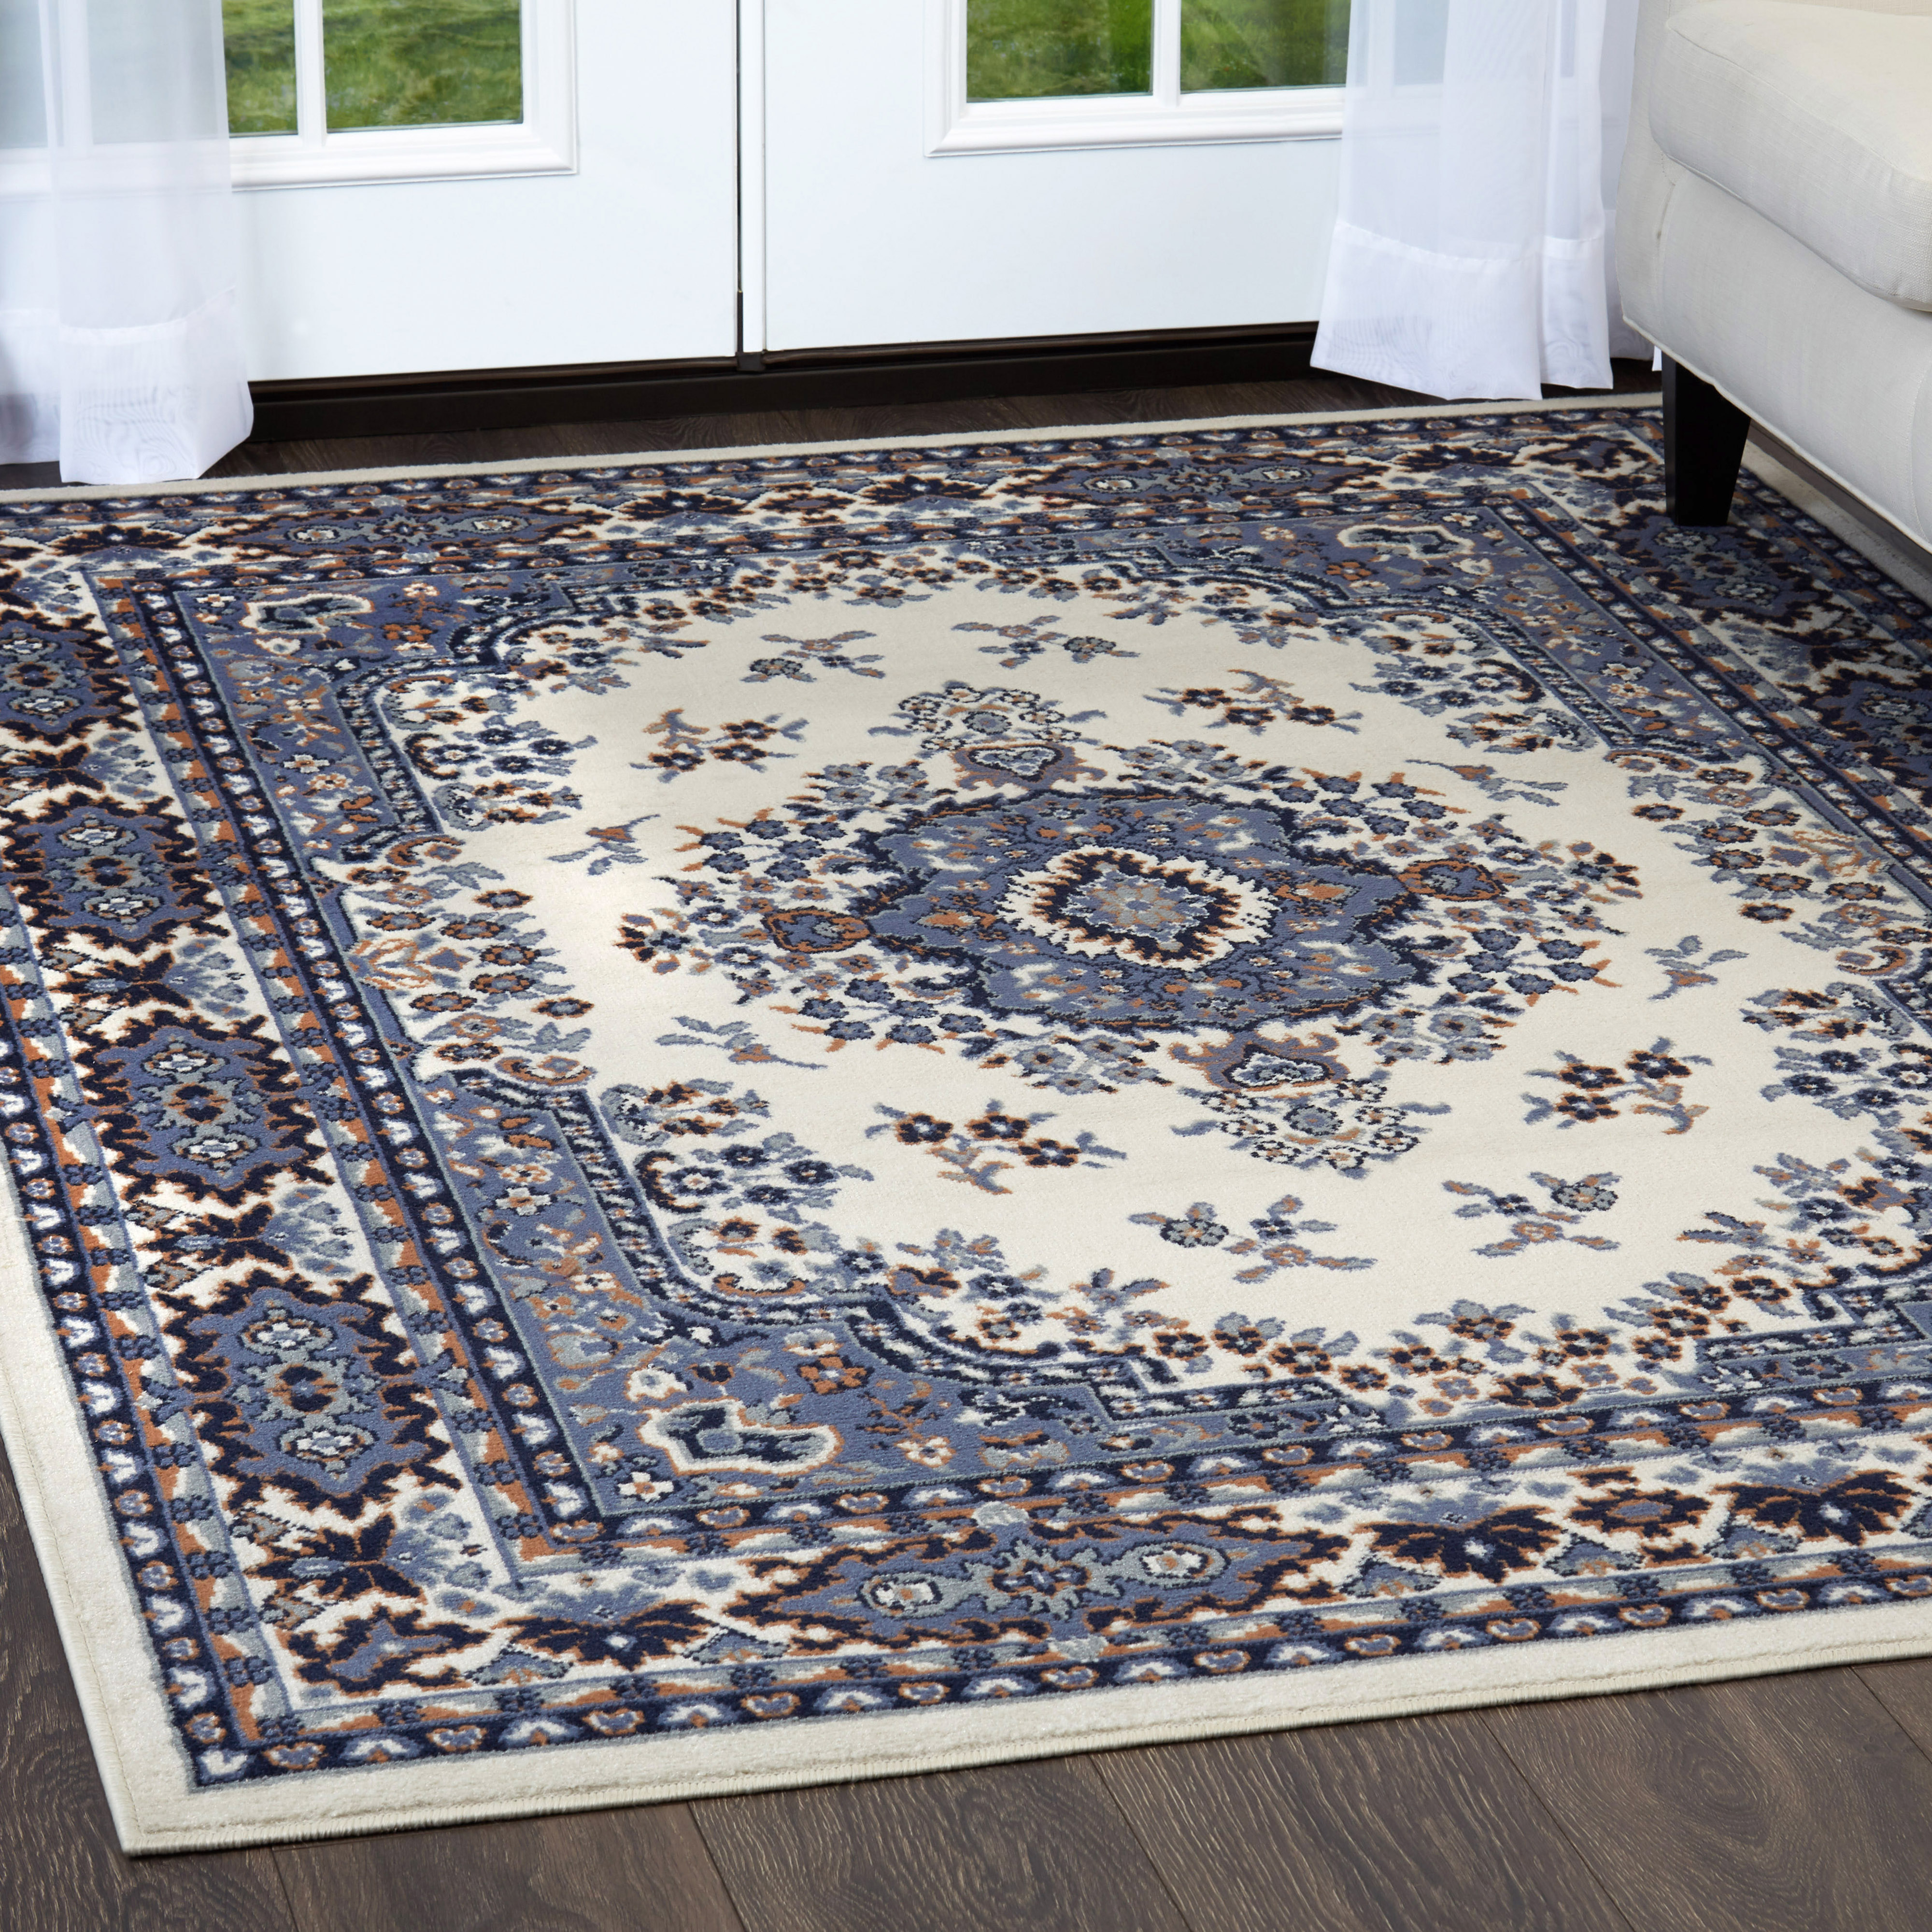 Home Dynamix Premium Collection 7069-103 Area Rug